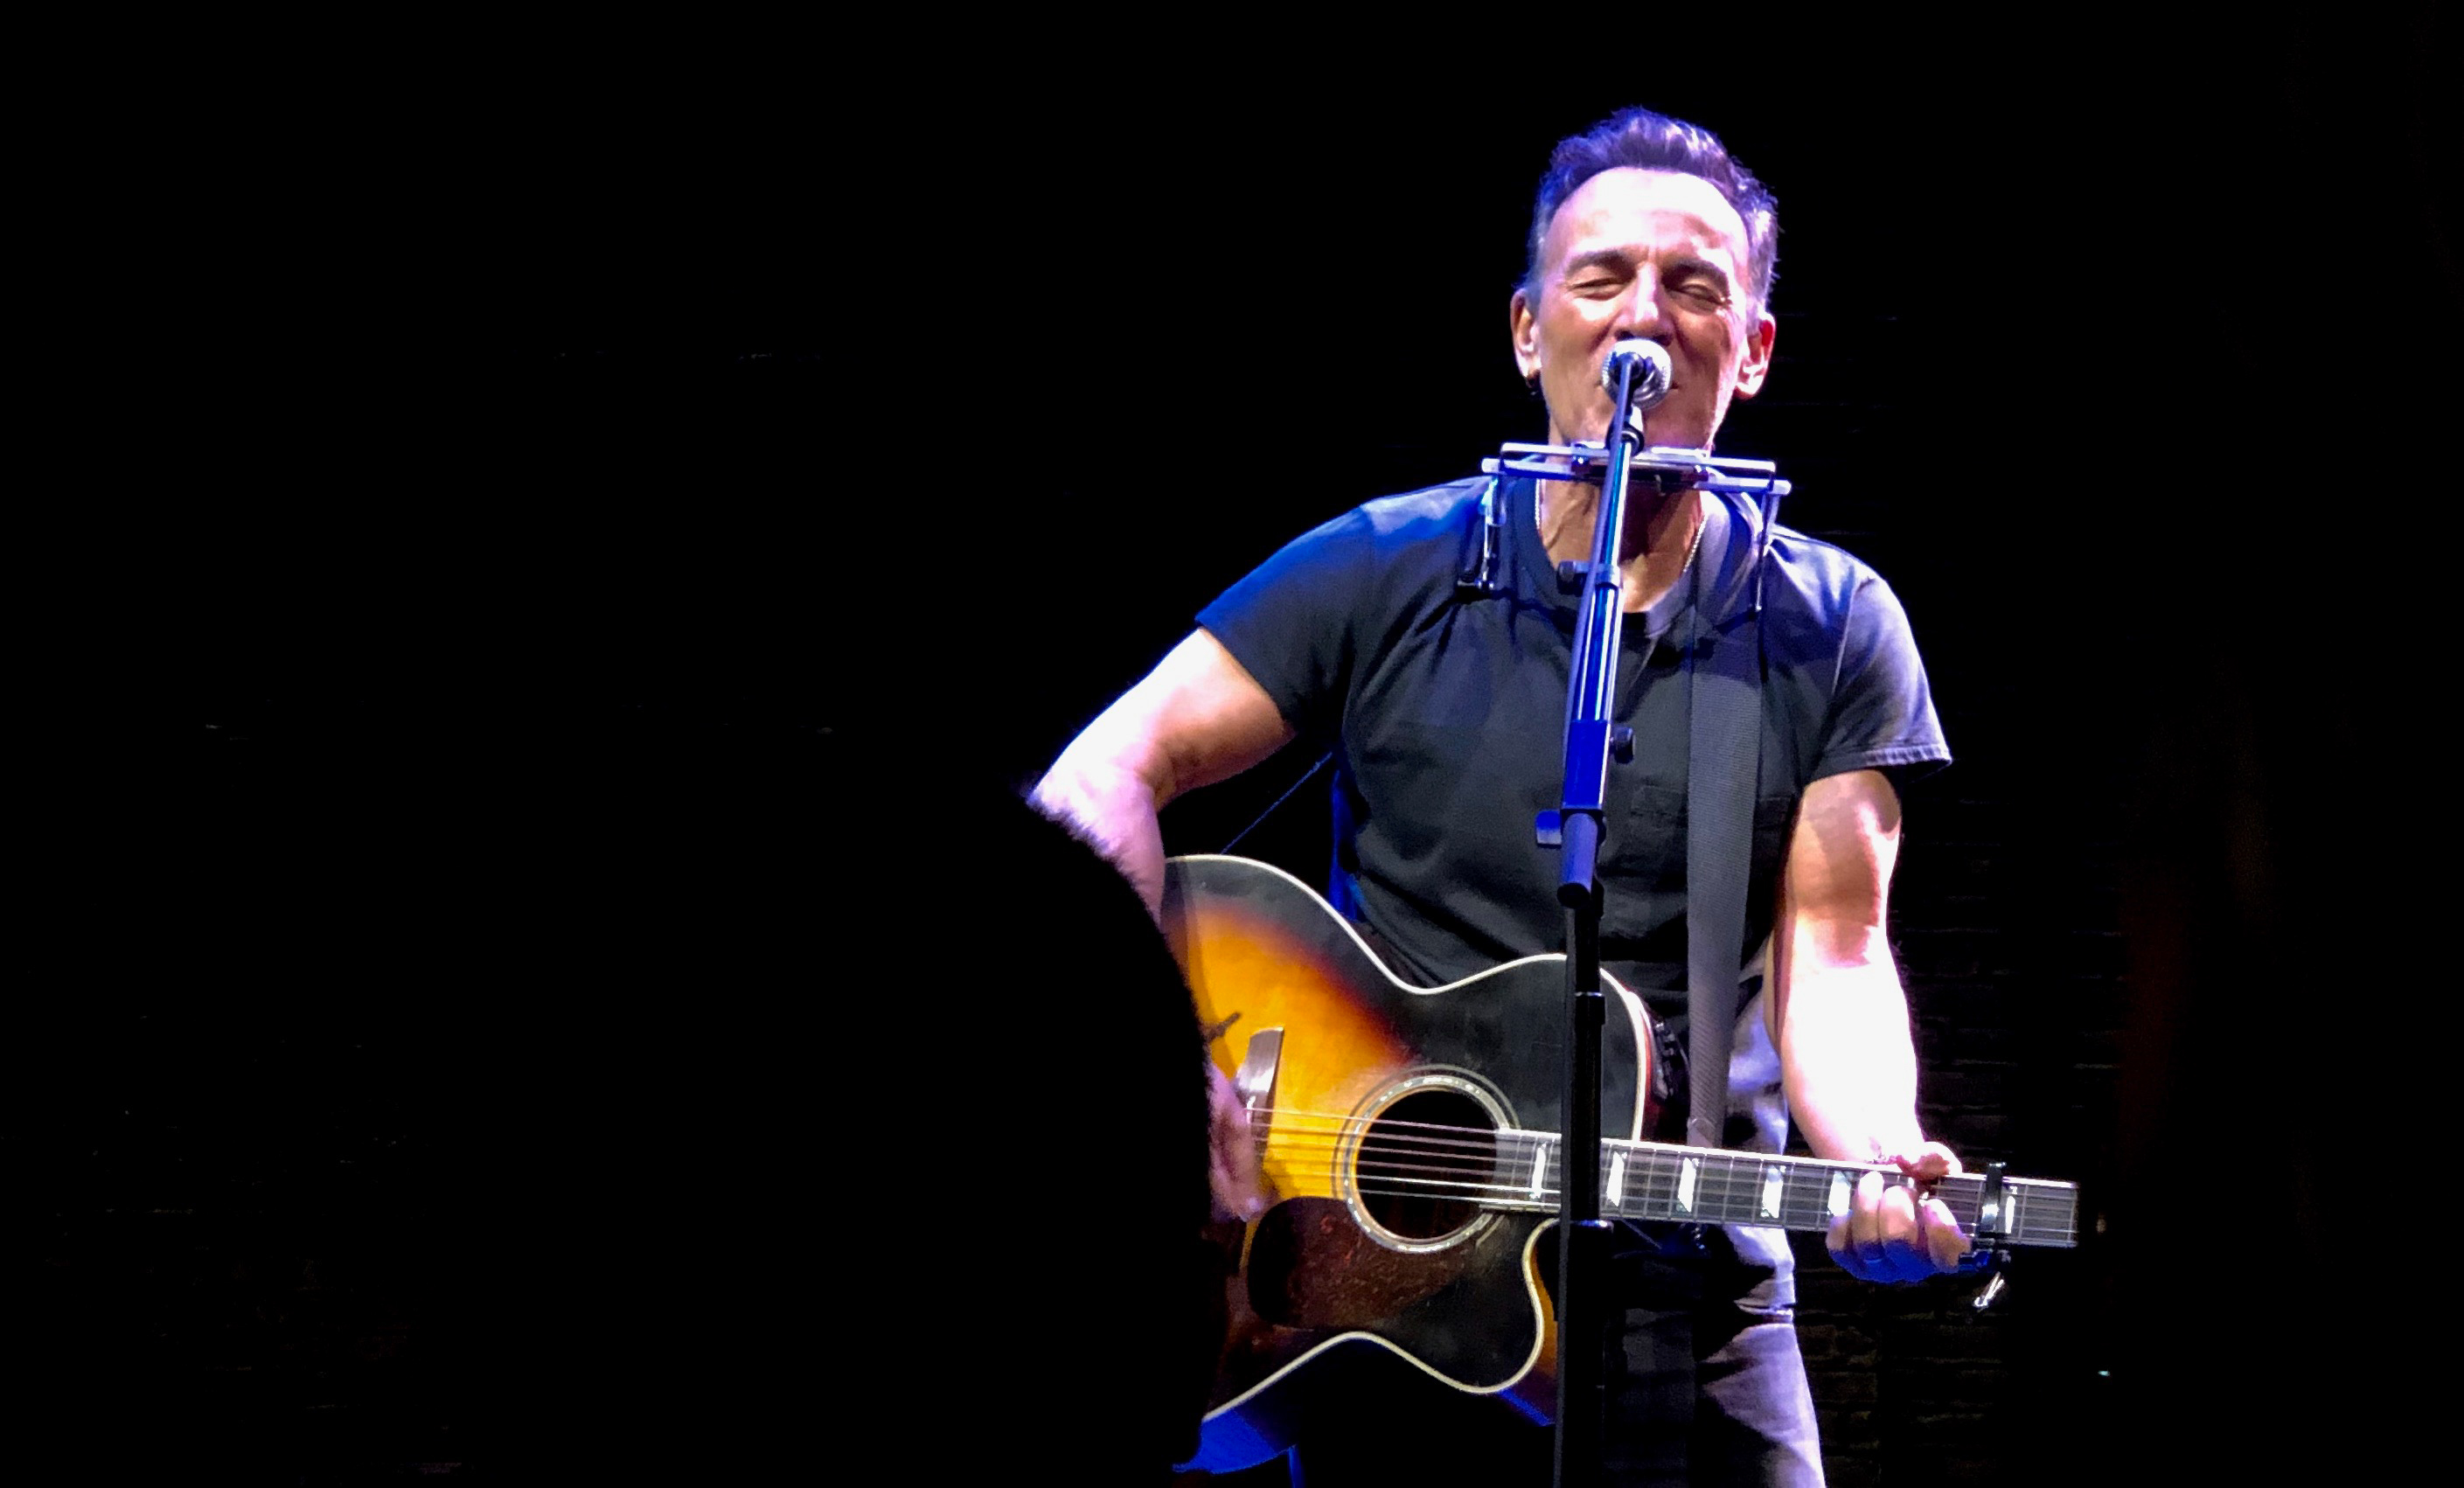 Tired of buying tickets at inflated prices? Bill named for Springsteen aims to help concert goers.